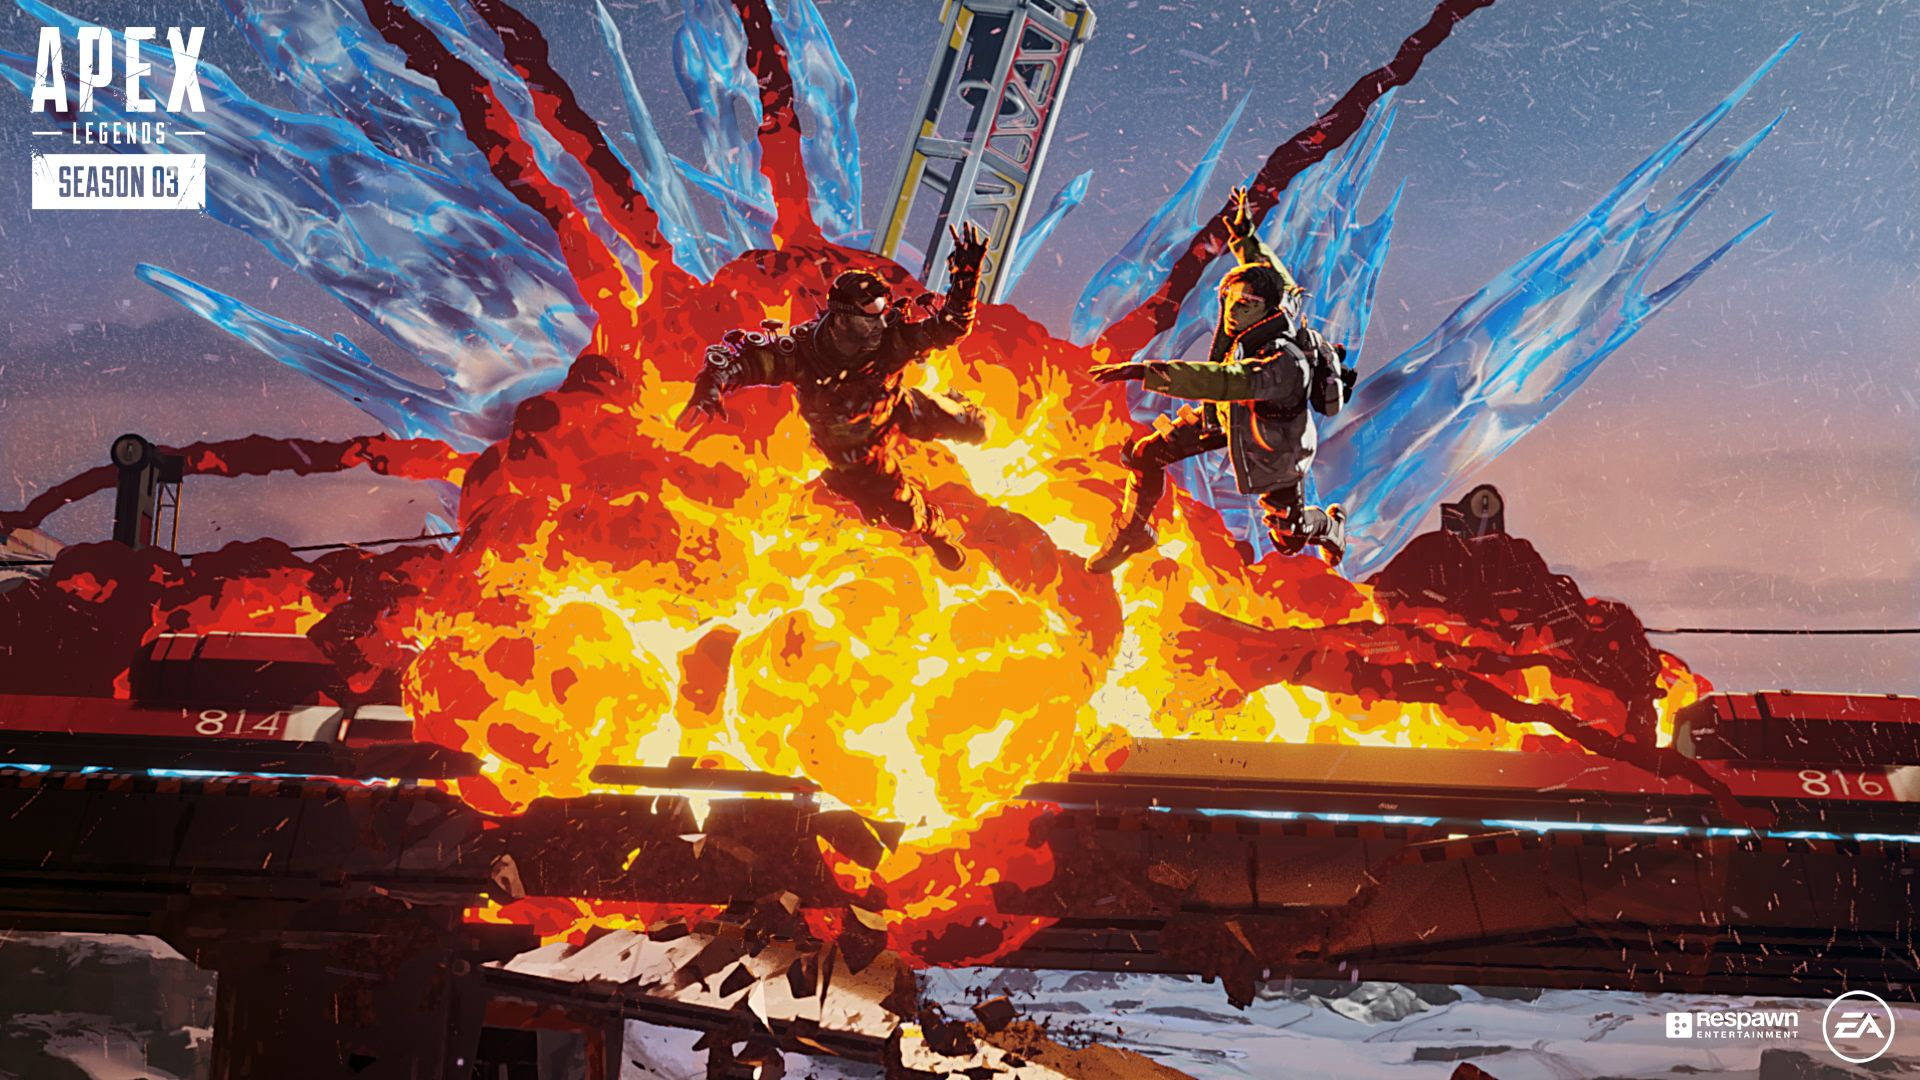 An explosion on Apex Legends' World's End map.